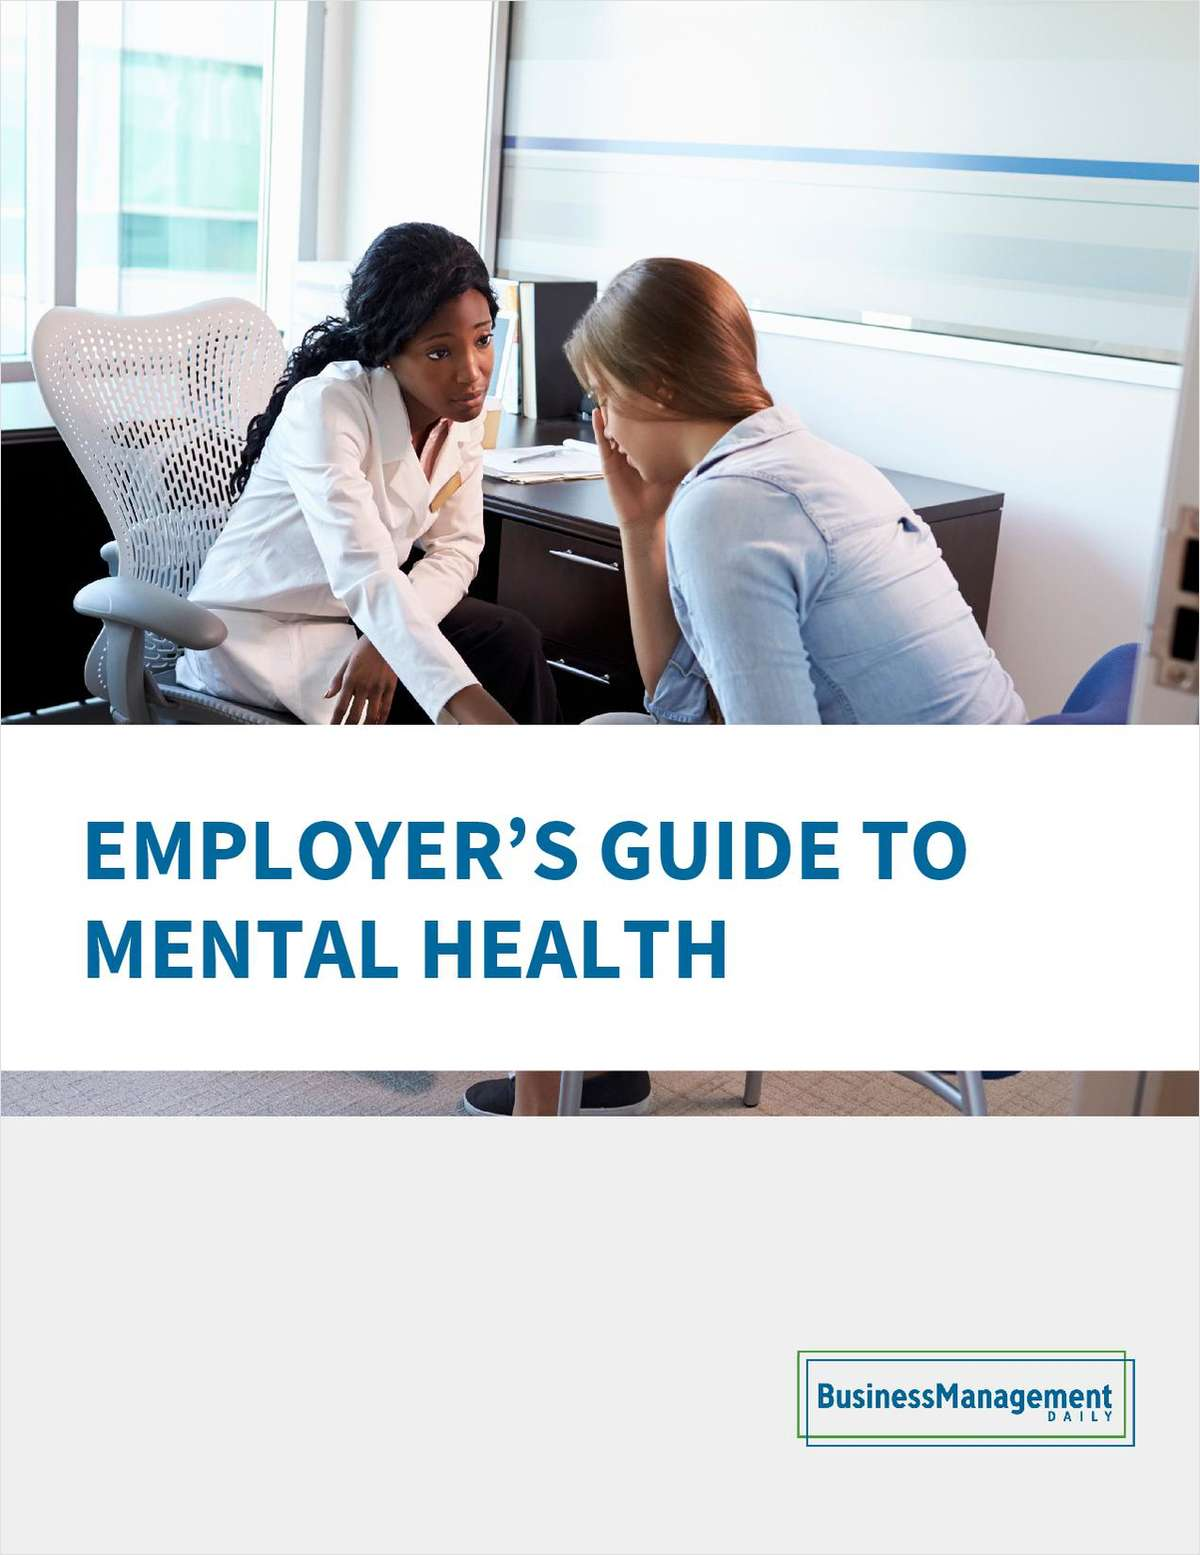 Employer's Guide to Mental Health